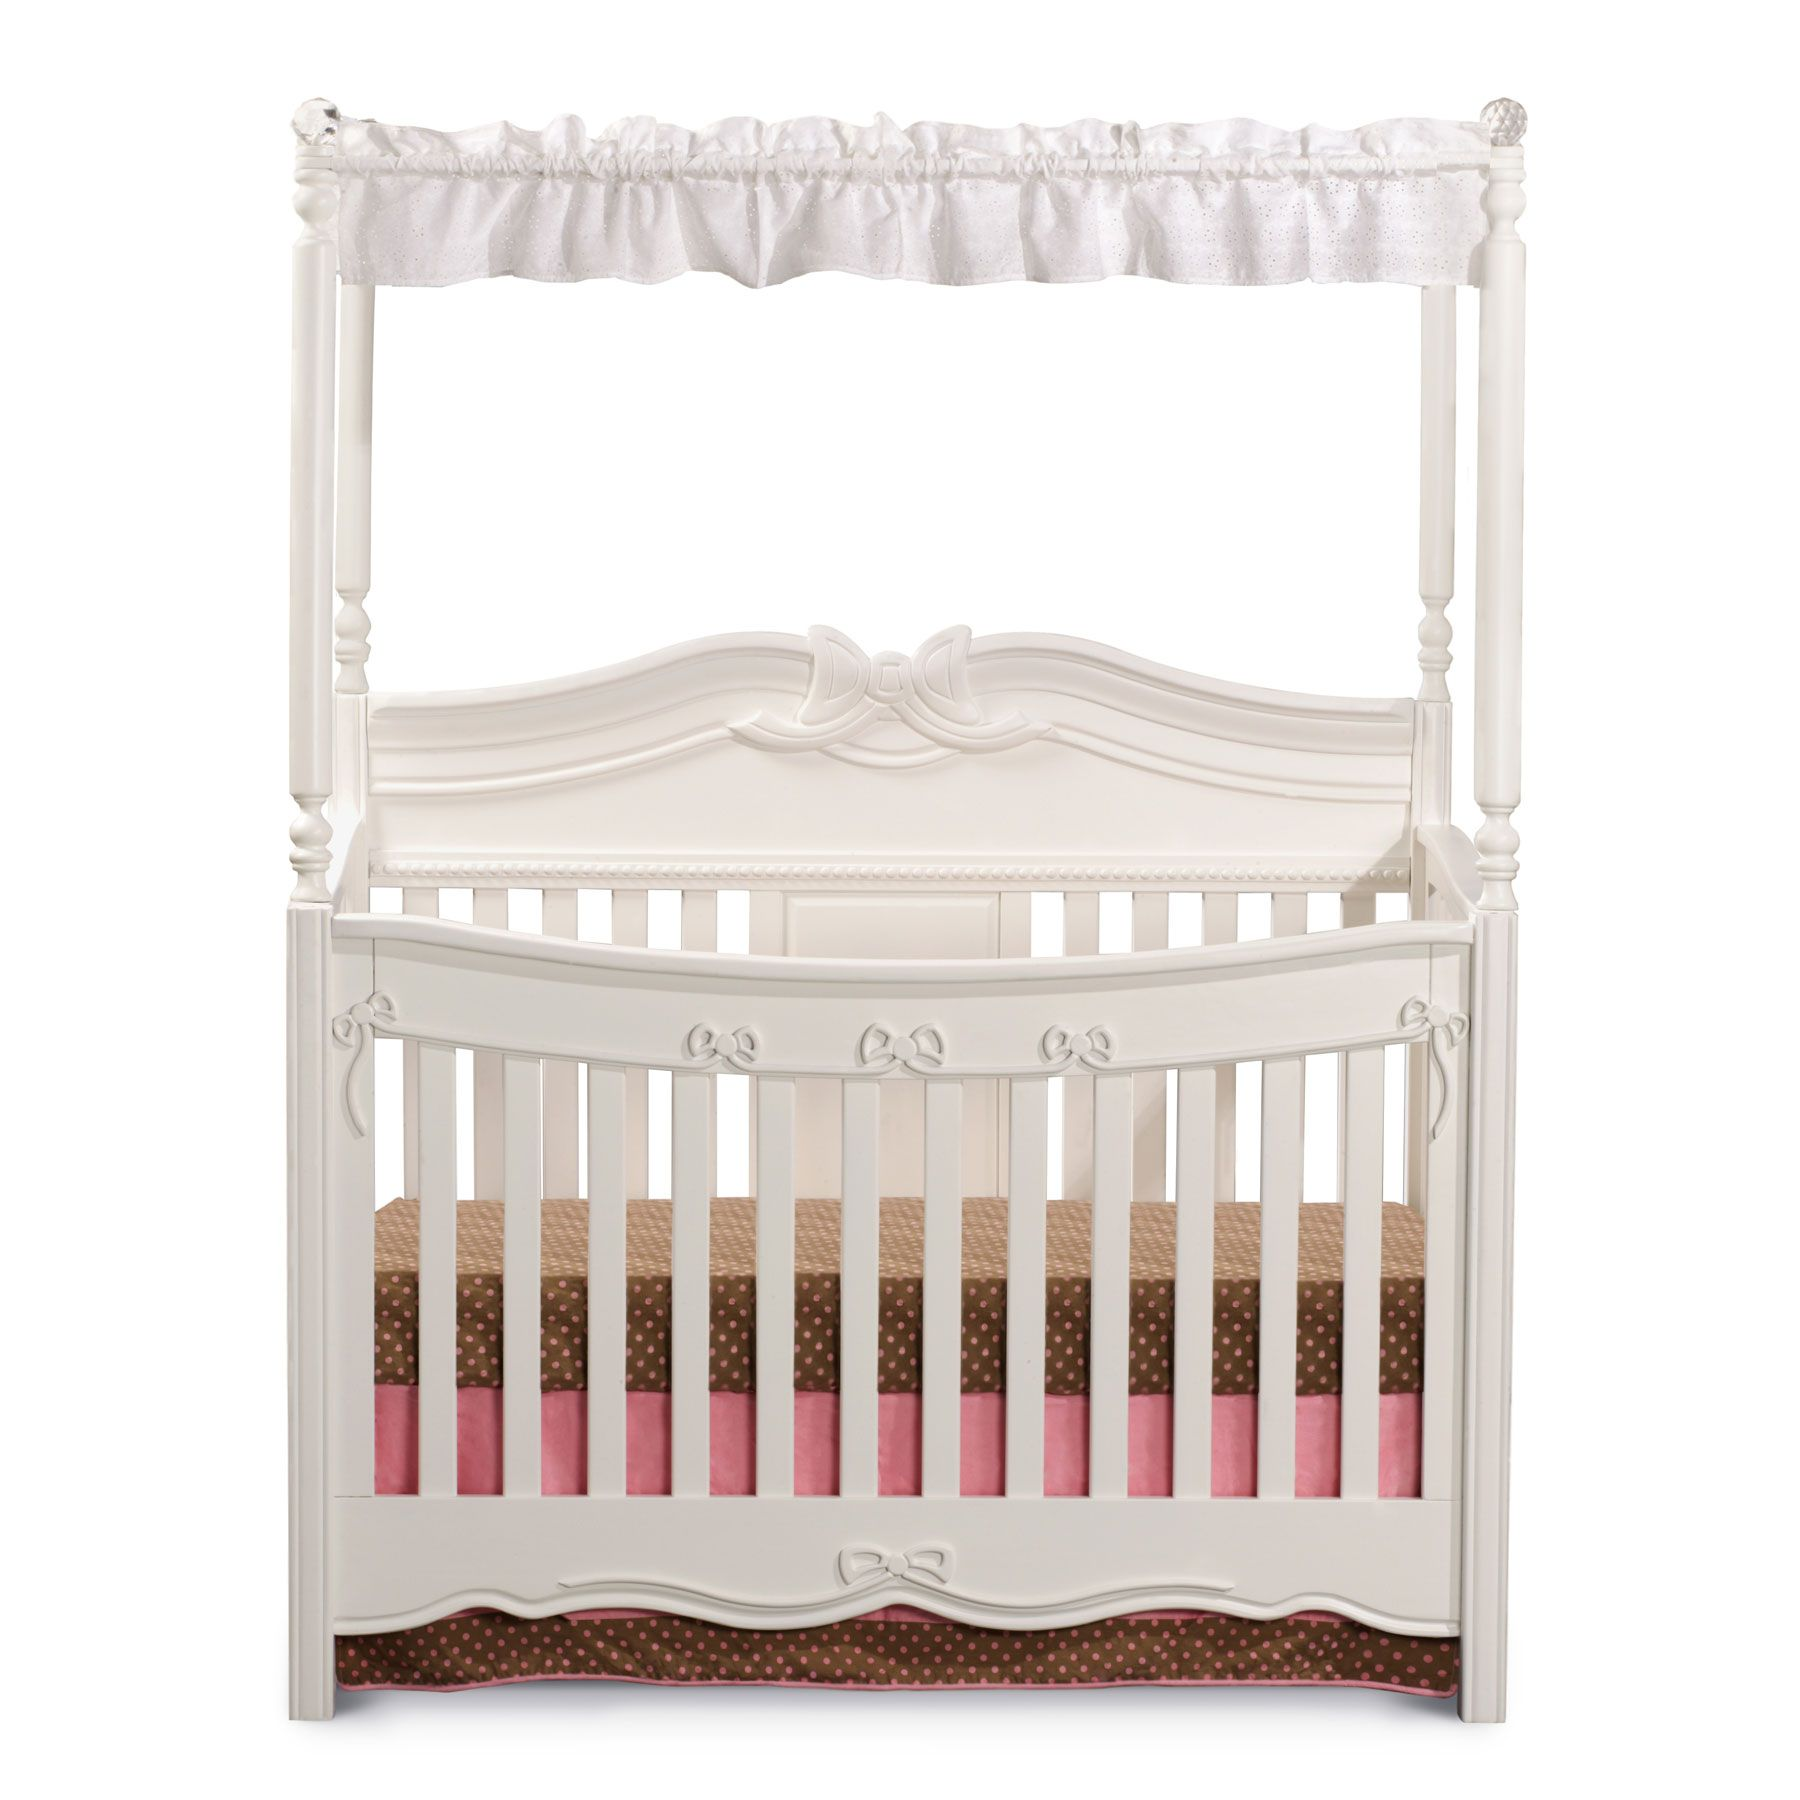 Enchanted 4-in-1 Crib from Delta Children\'s Products featuring ...